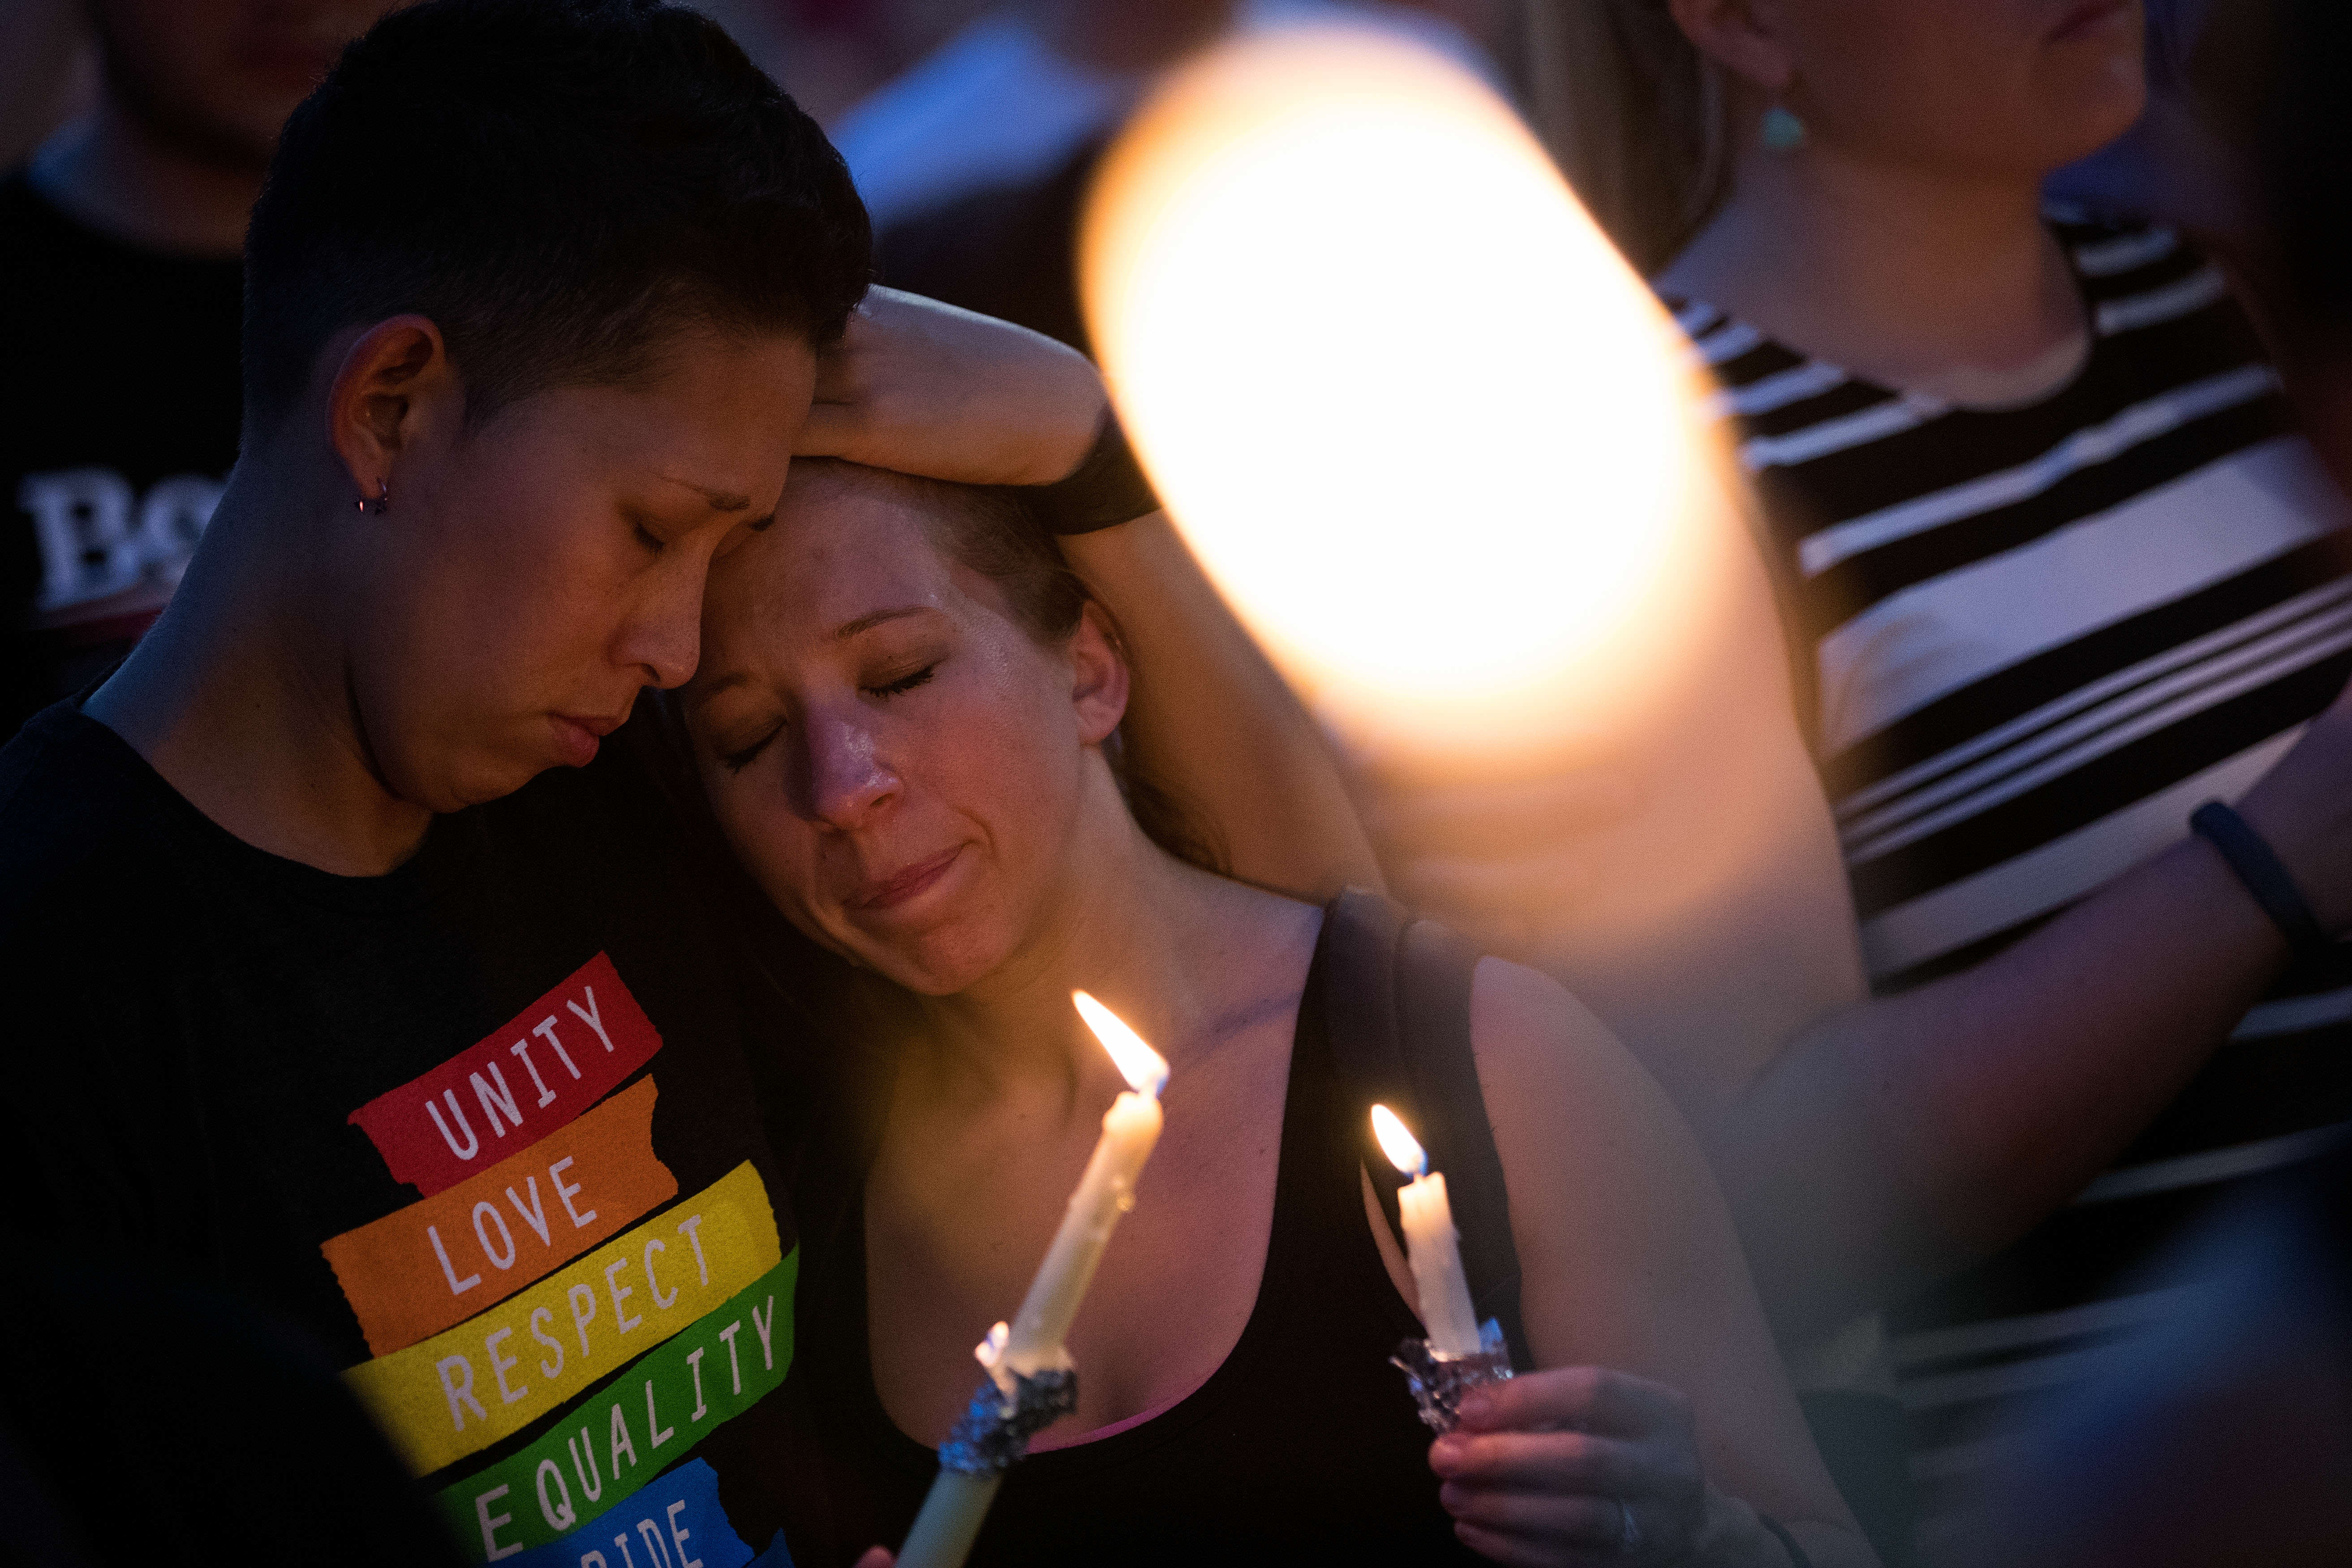 More Details About The Orlando Shooter Have Been Revealed GettyImages 540006724 1